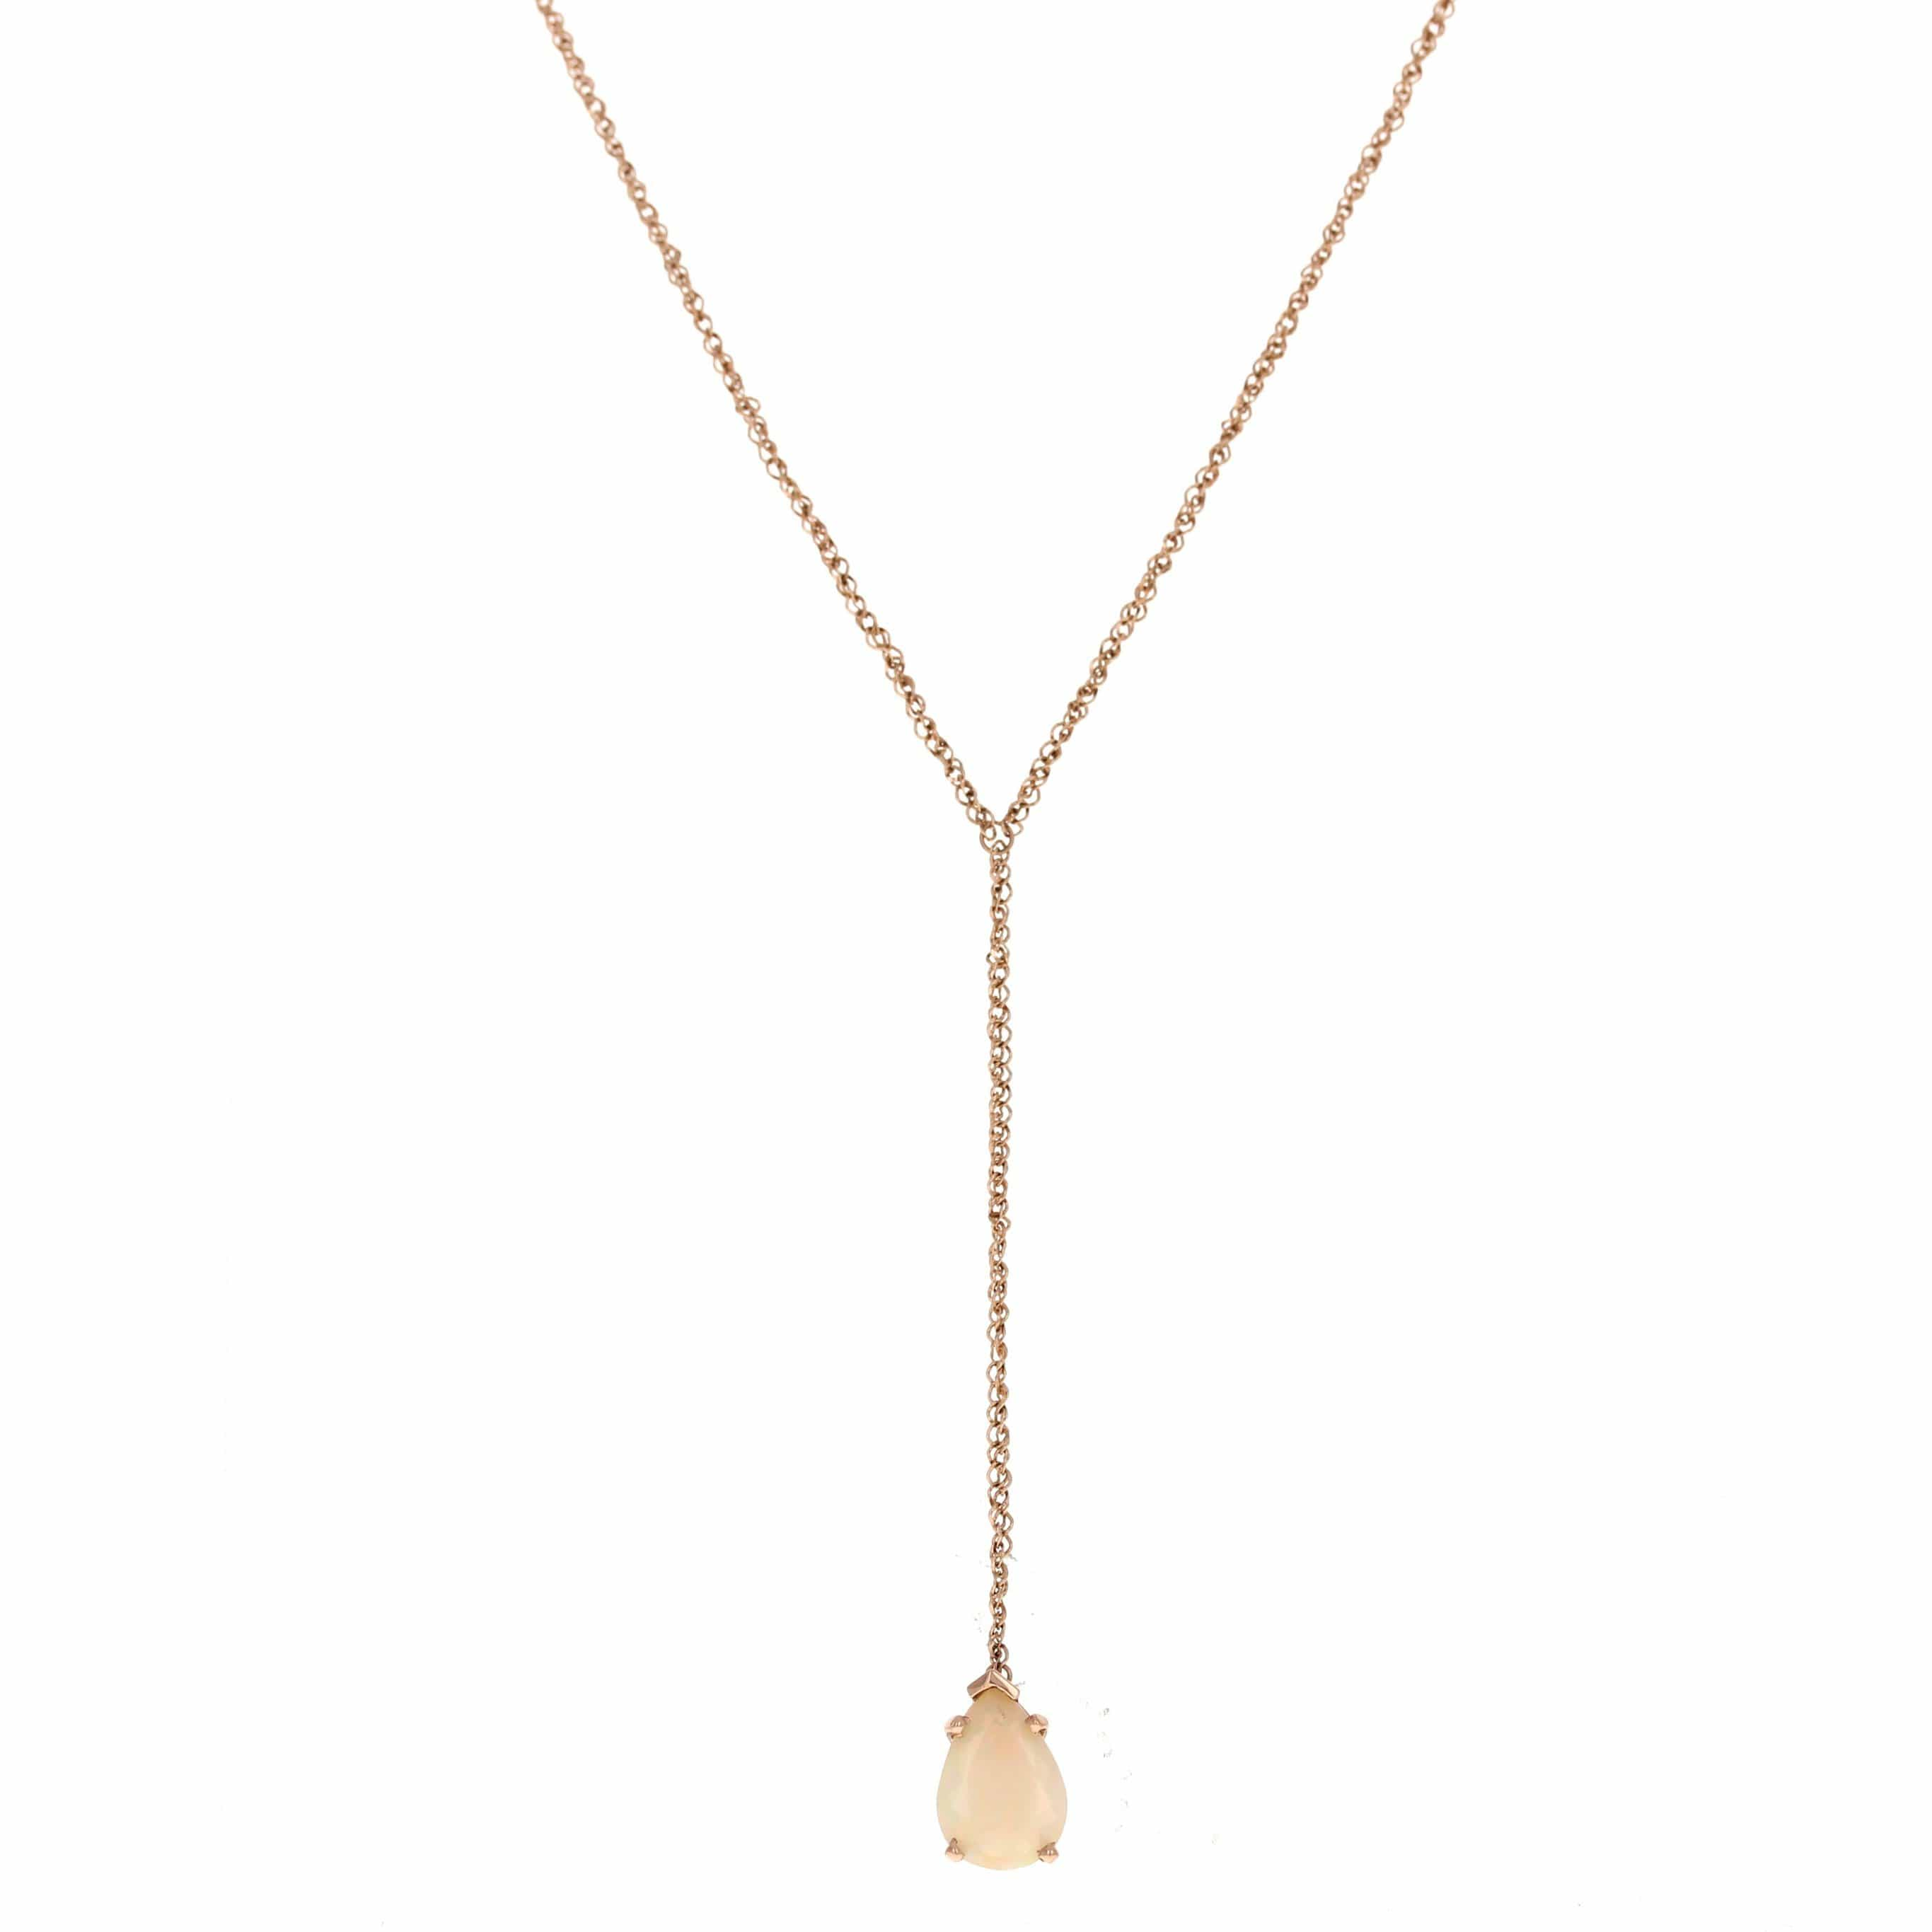 Drop Pendant Teardrop Opal Necklace - Curated Los Angeles